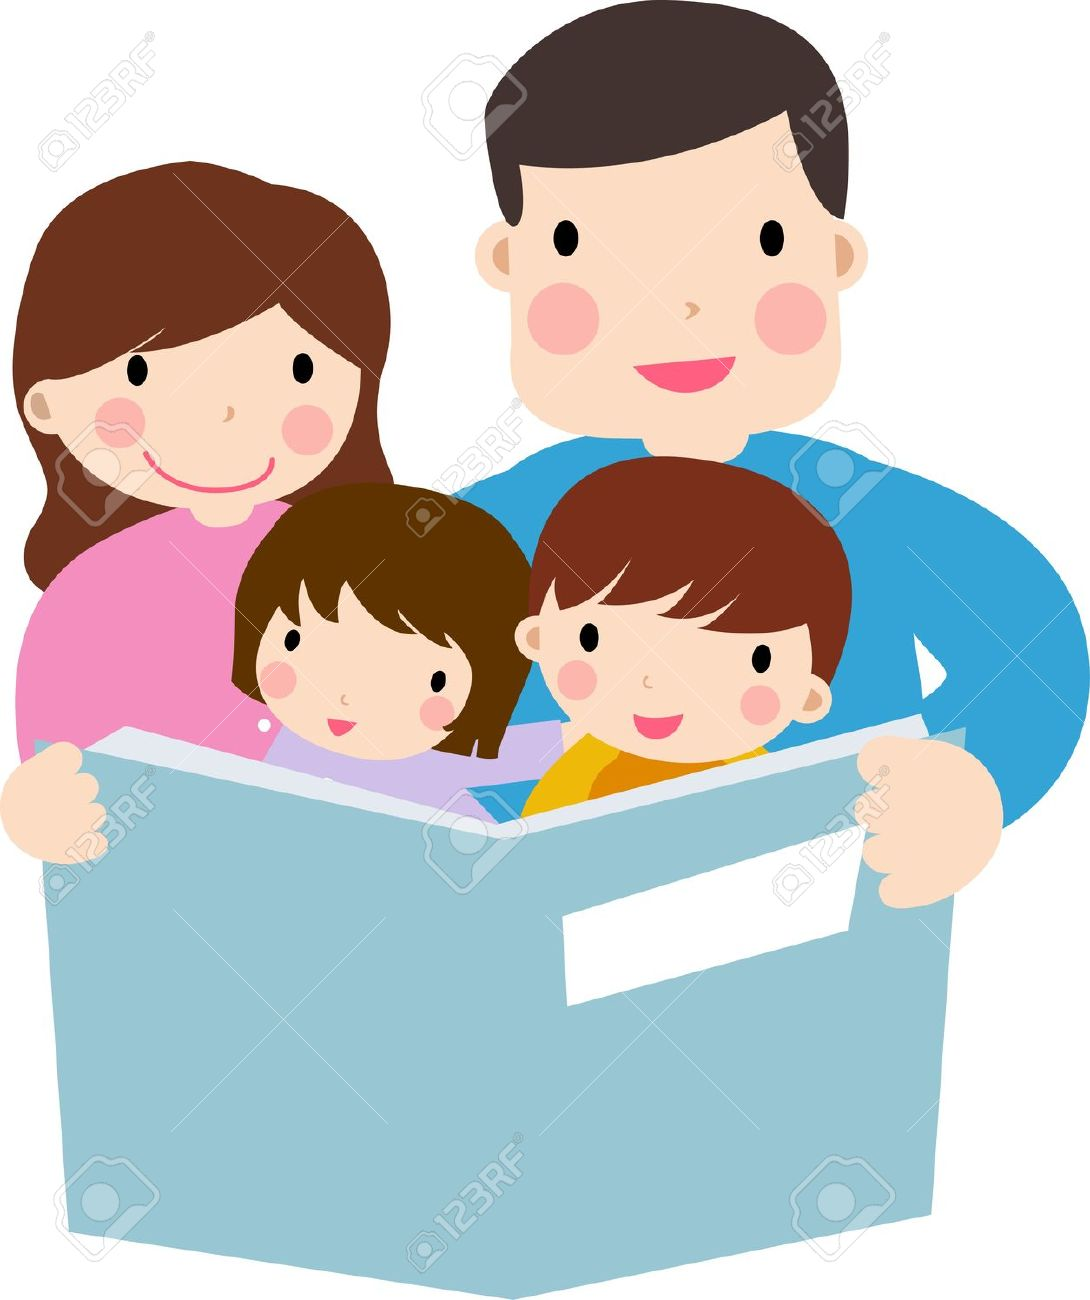 Clip Art Parents Clipart baby with parents clipart kid bisexuality panda free images